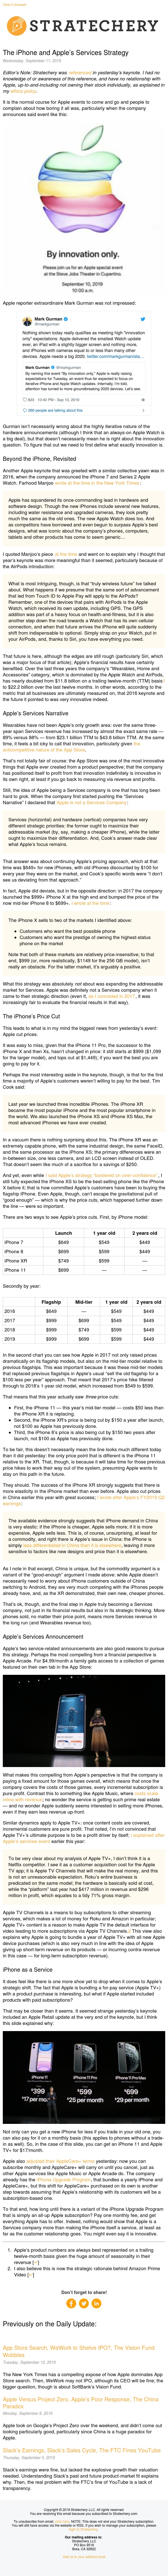 The iPhone and Apple's Services Strategy (Stratechery Weekly Article 9-11-2019)